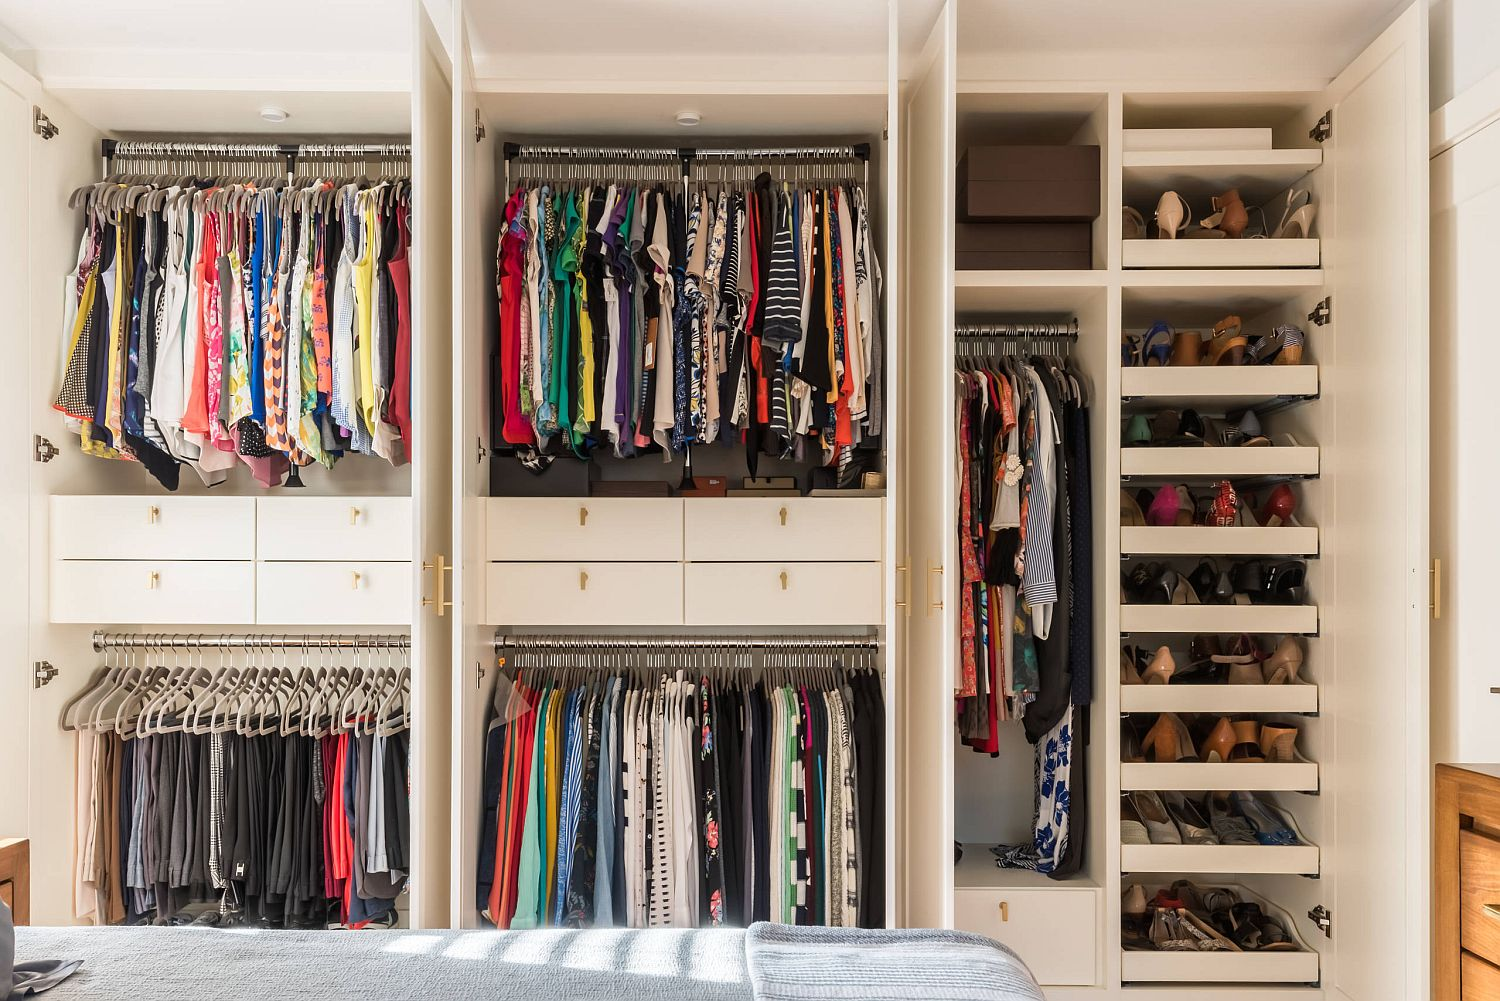 Neat organization of clothes, footwear and accessories in the small closet